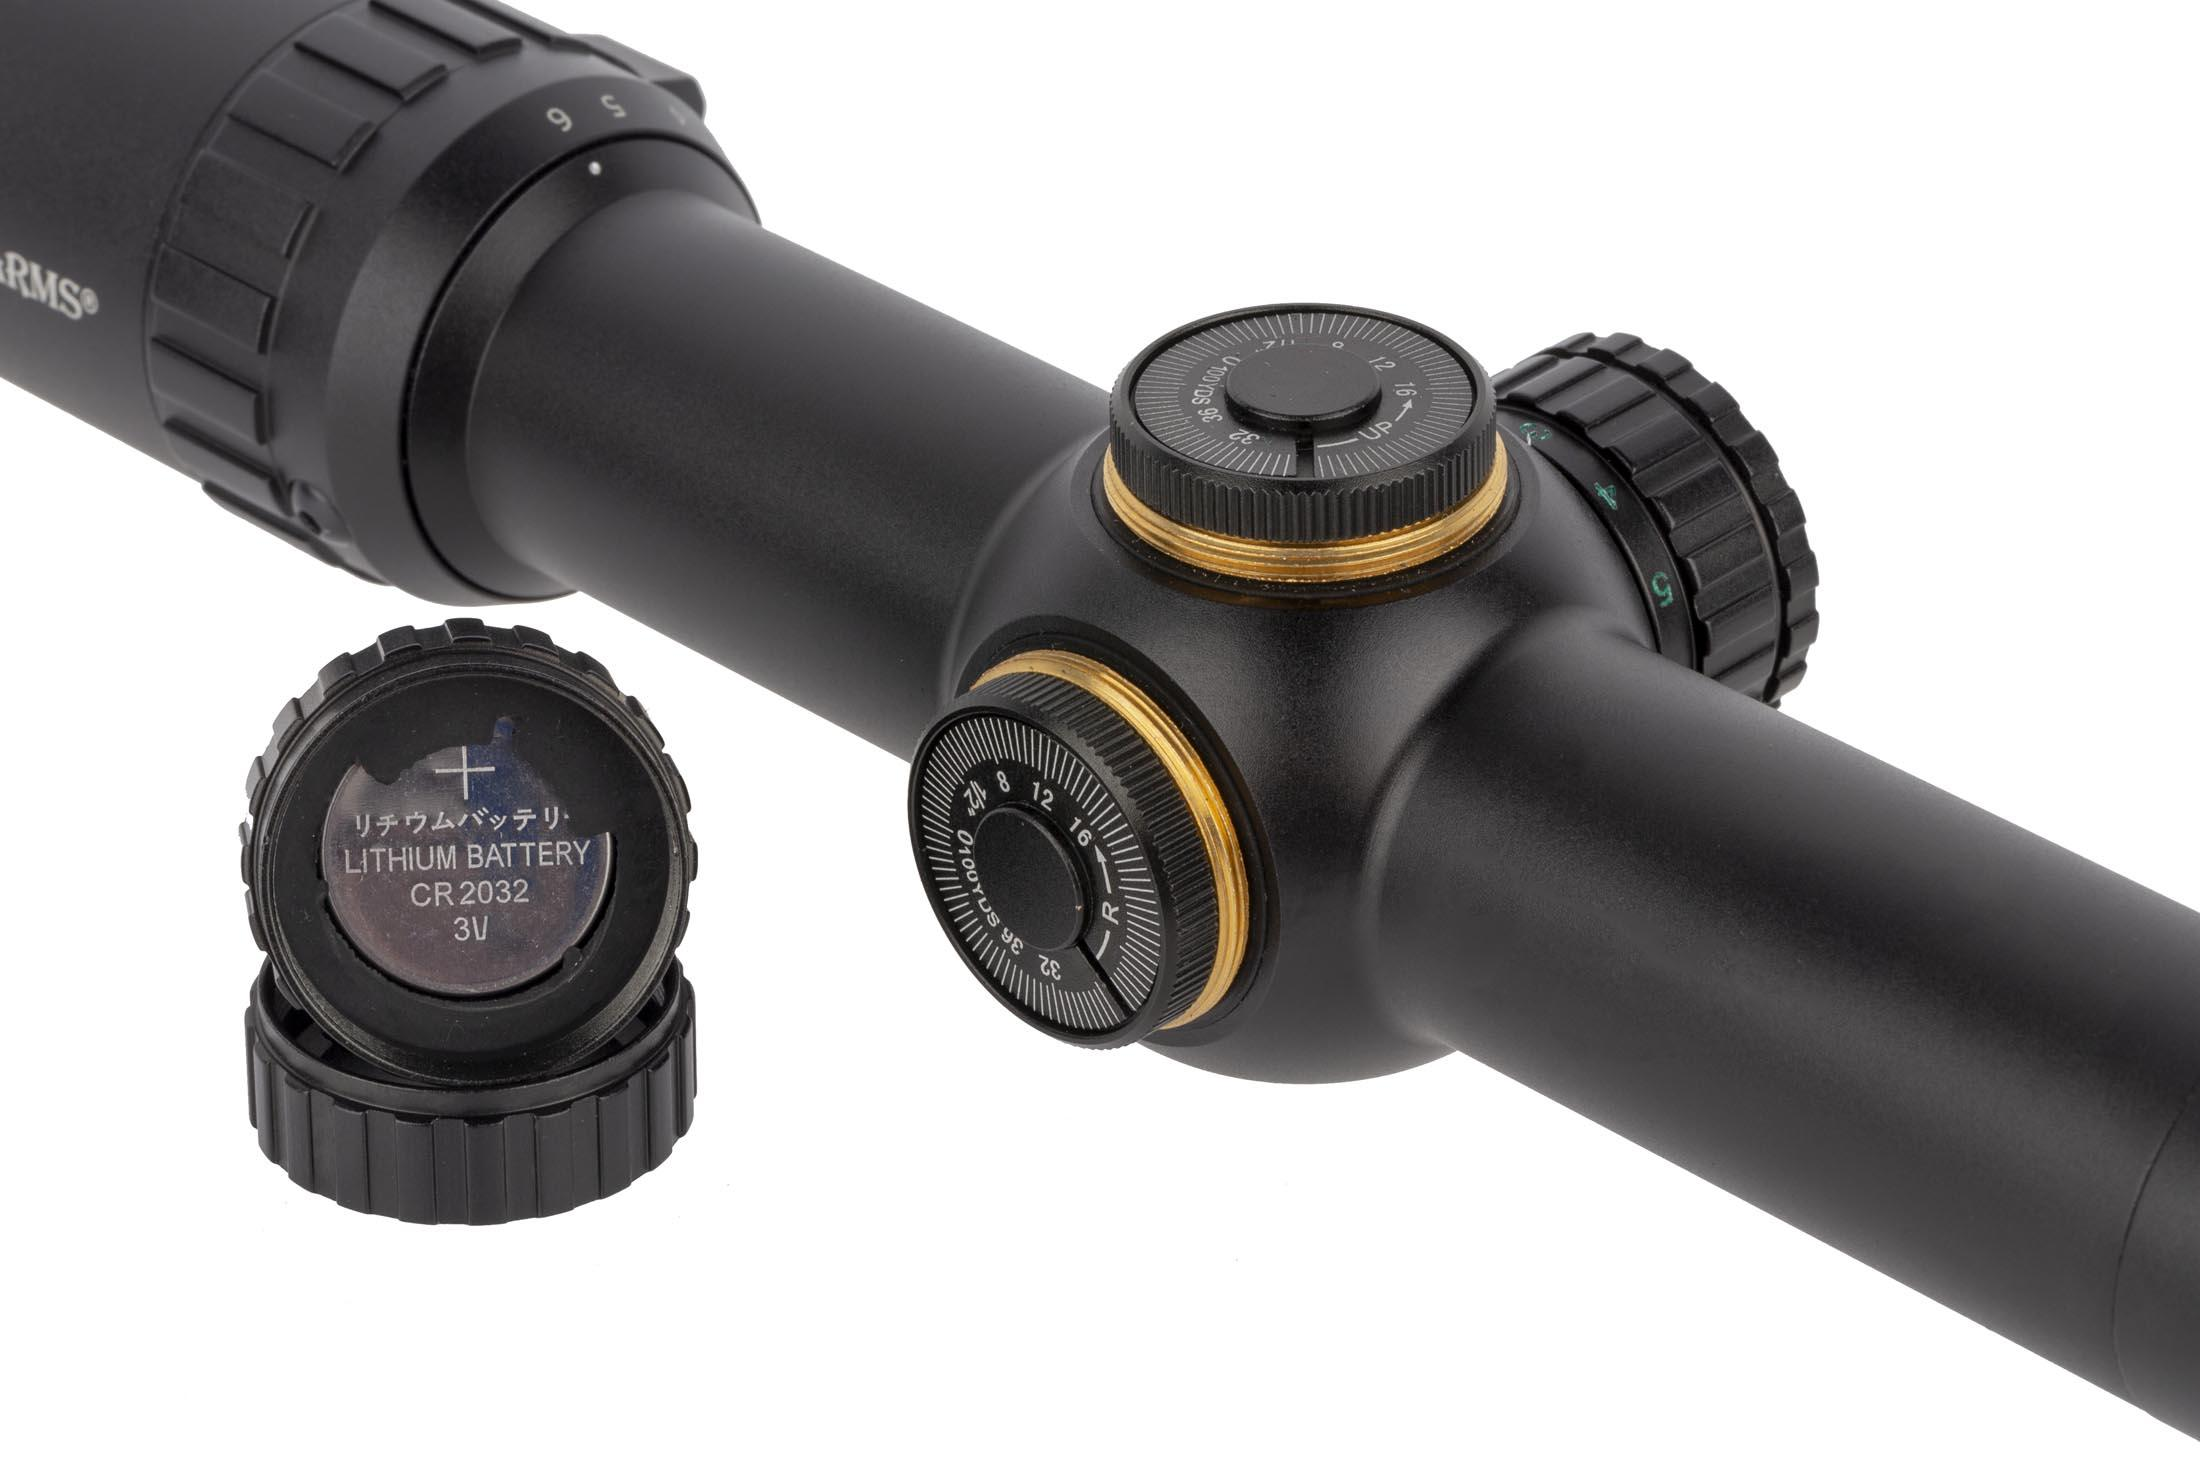 Primary Arms 3rd Gen SFP 1-6x24mm rifle scope with ACSS Predator reticle features 1/2 MOA click adjust turrets and a spare battery